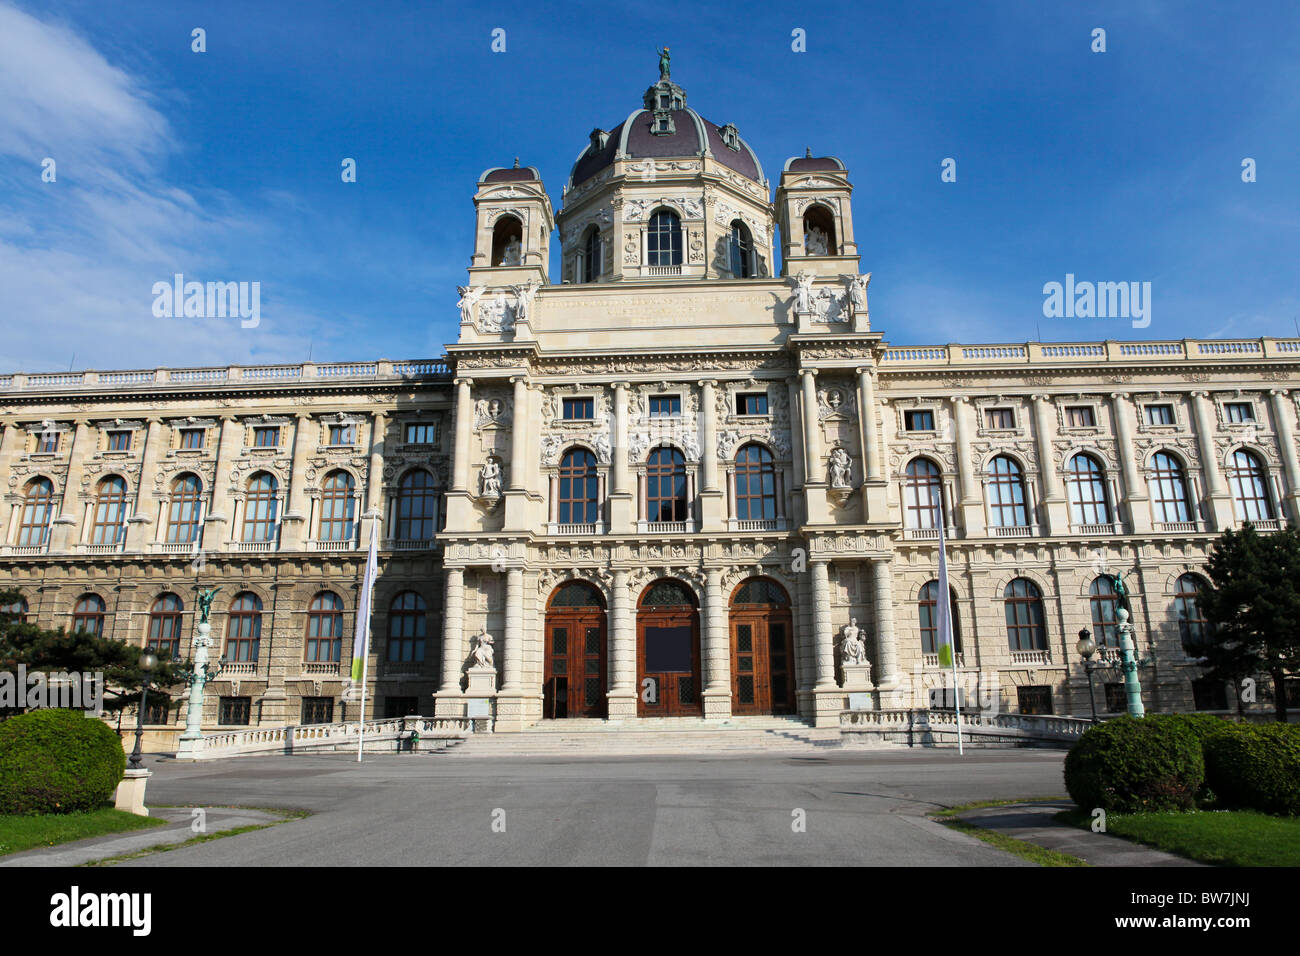 """The Kunsthistorisches Museum (English: """"Museum of Art History"""", also often referred to as the """"Museum of Fine Arts"""") Stock Photo"""